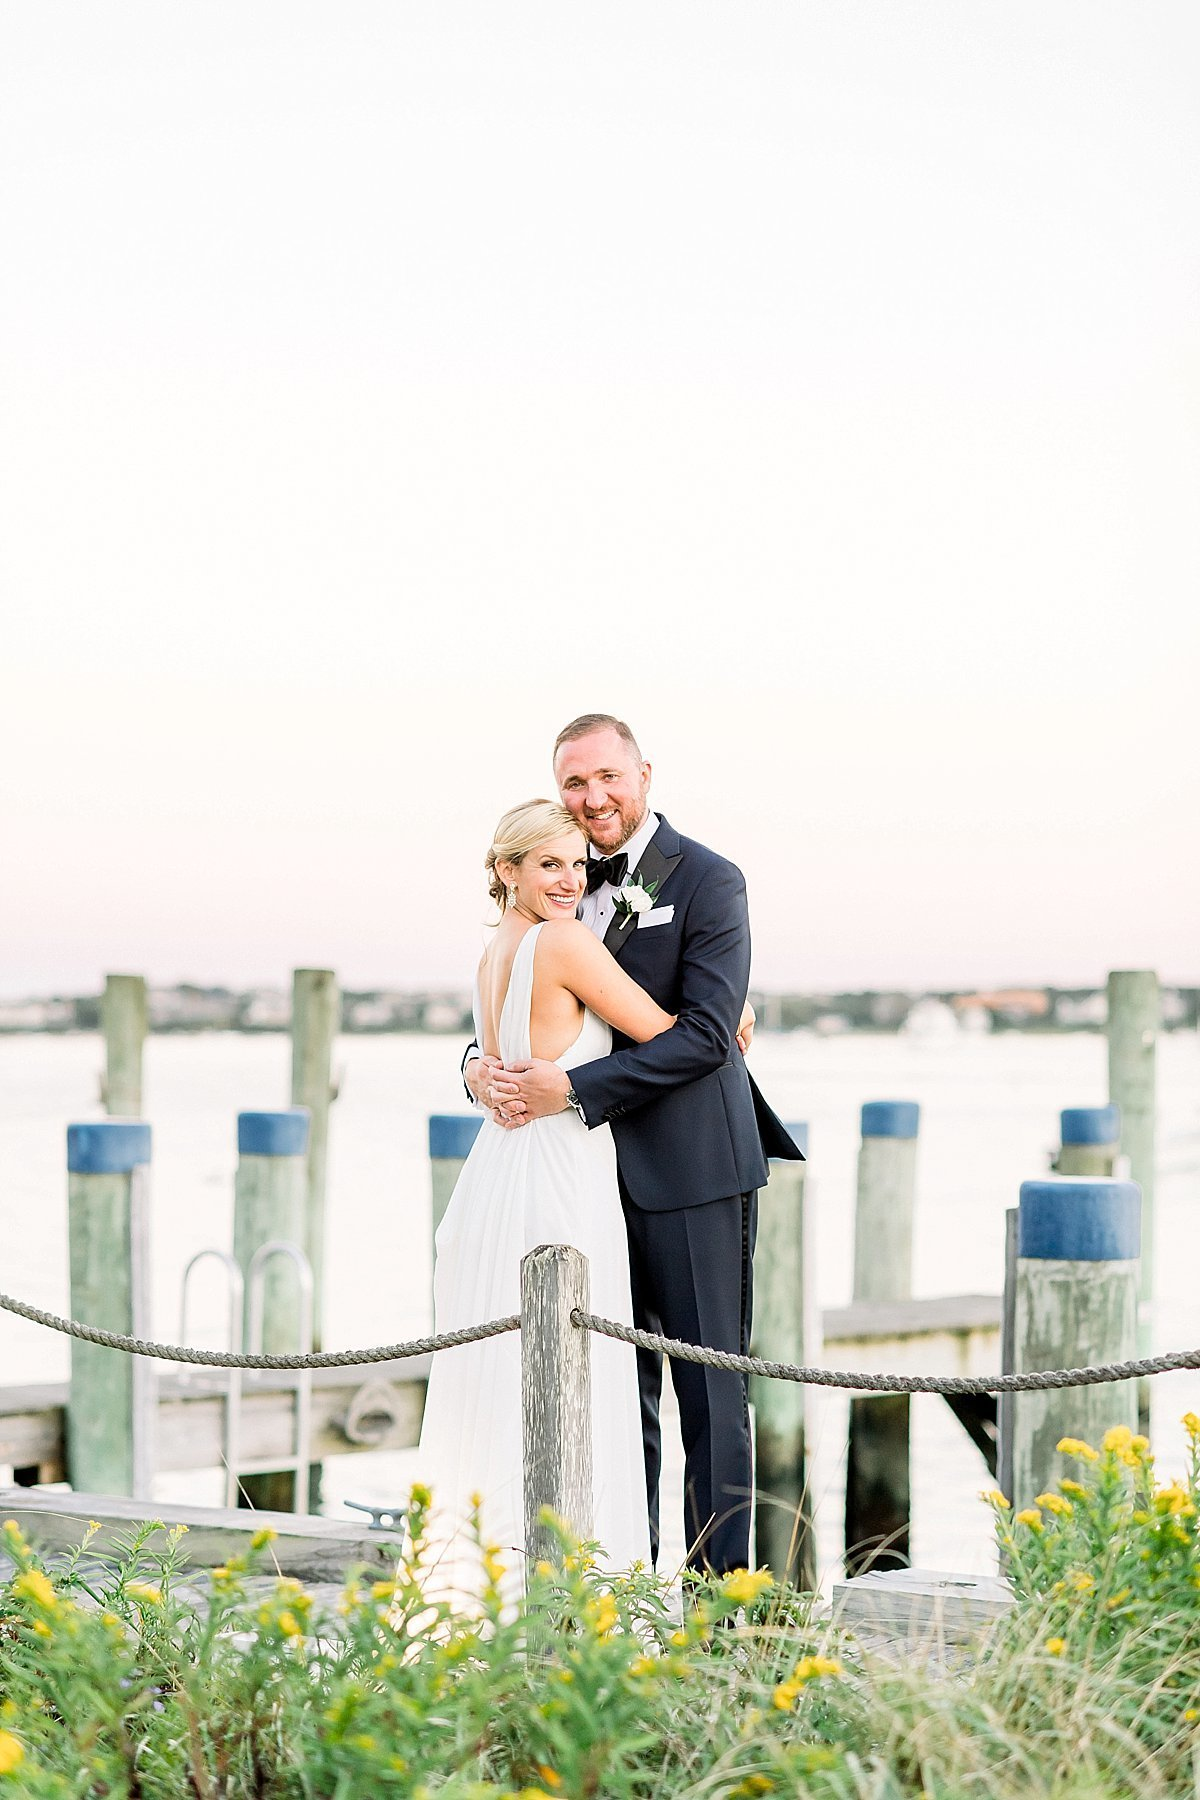 Weddings | Nantucket, MA Wedding & Portrait Photographer